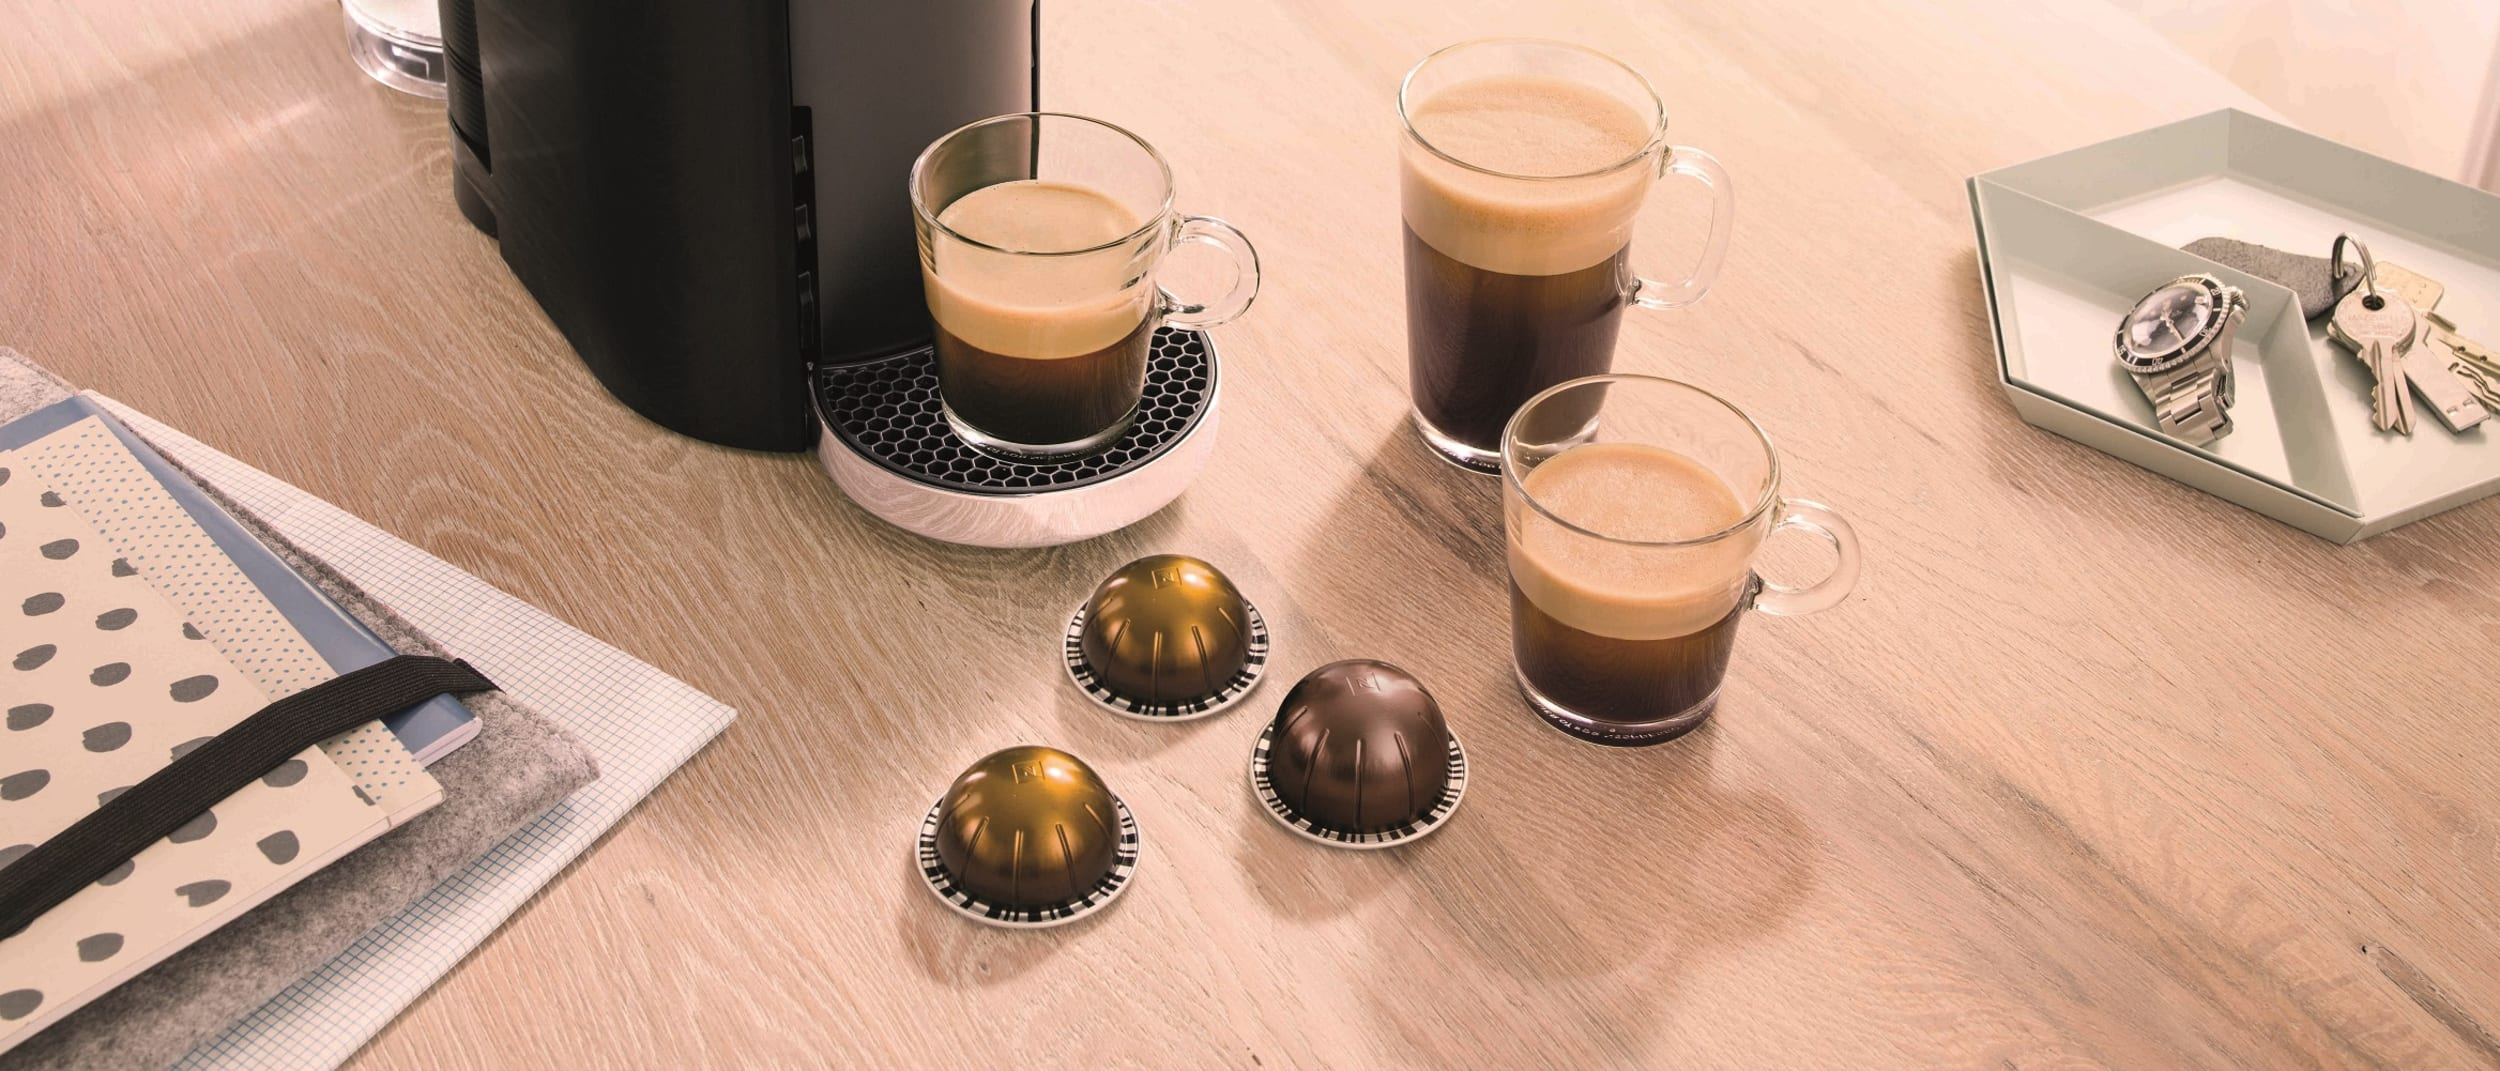 Nespresso: Back by popular demand